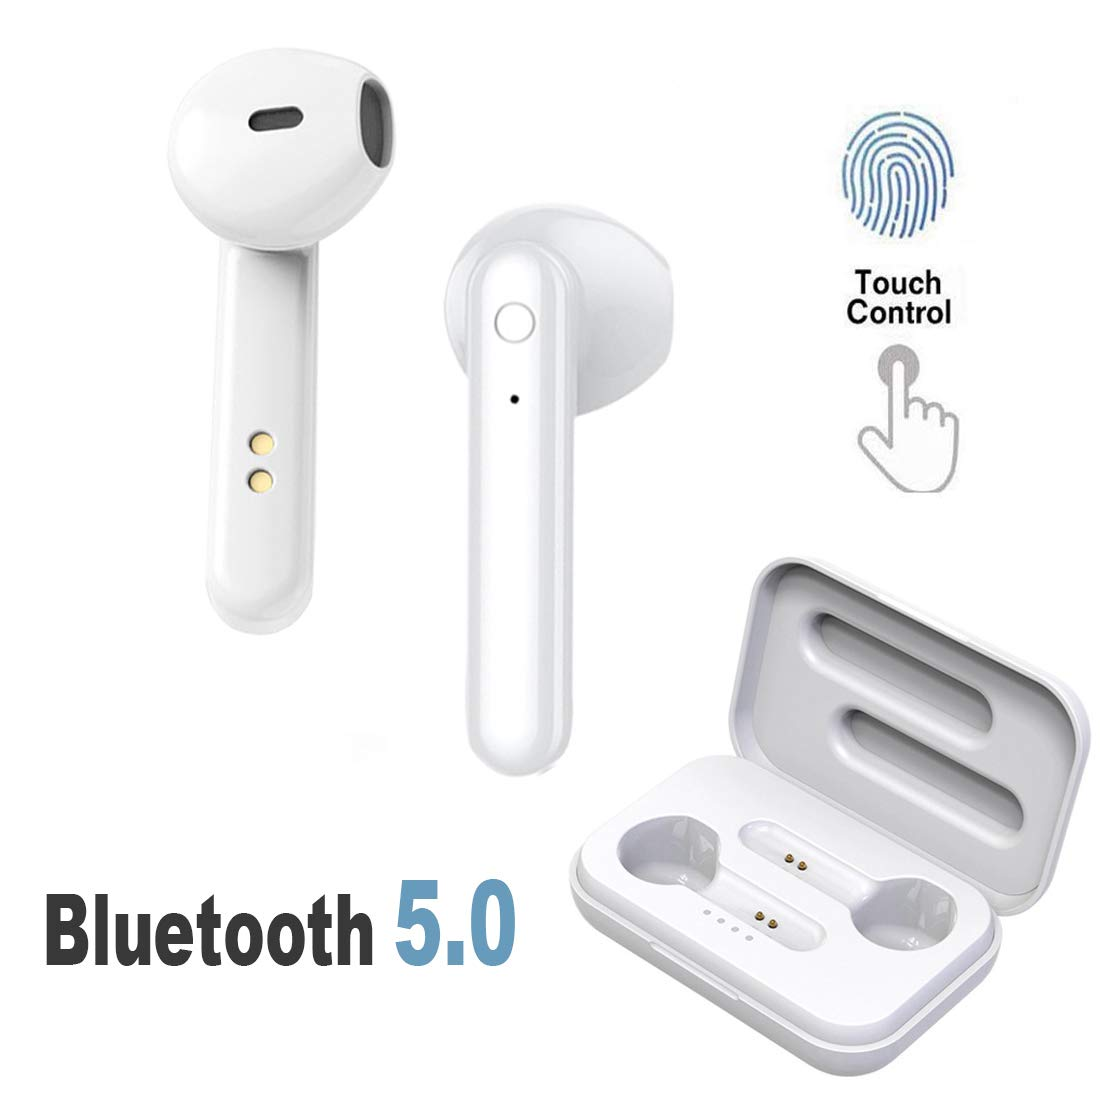 HonkTai Bluetooth Headphones Touch Control Headset Wireless Earbuds Noise Cancelling Stereo Bluetooth 5.0 Headphones Built in Mic Headset Sports in Ear Headphones White